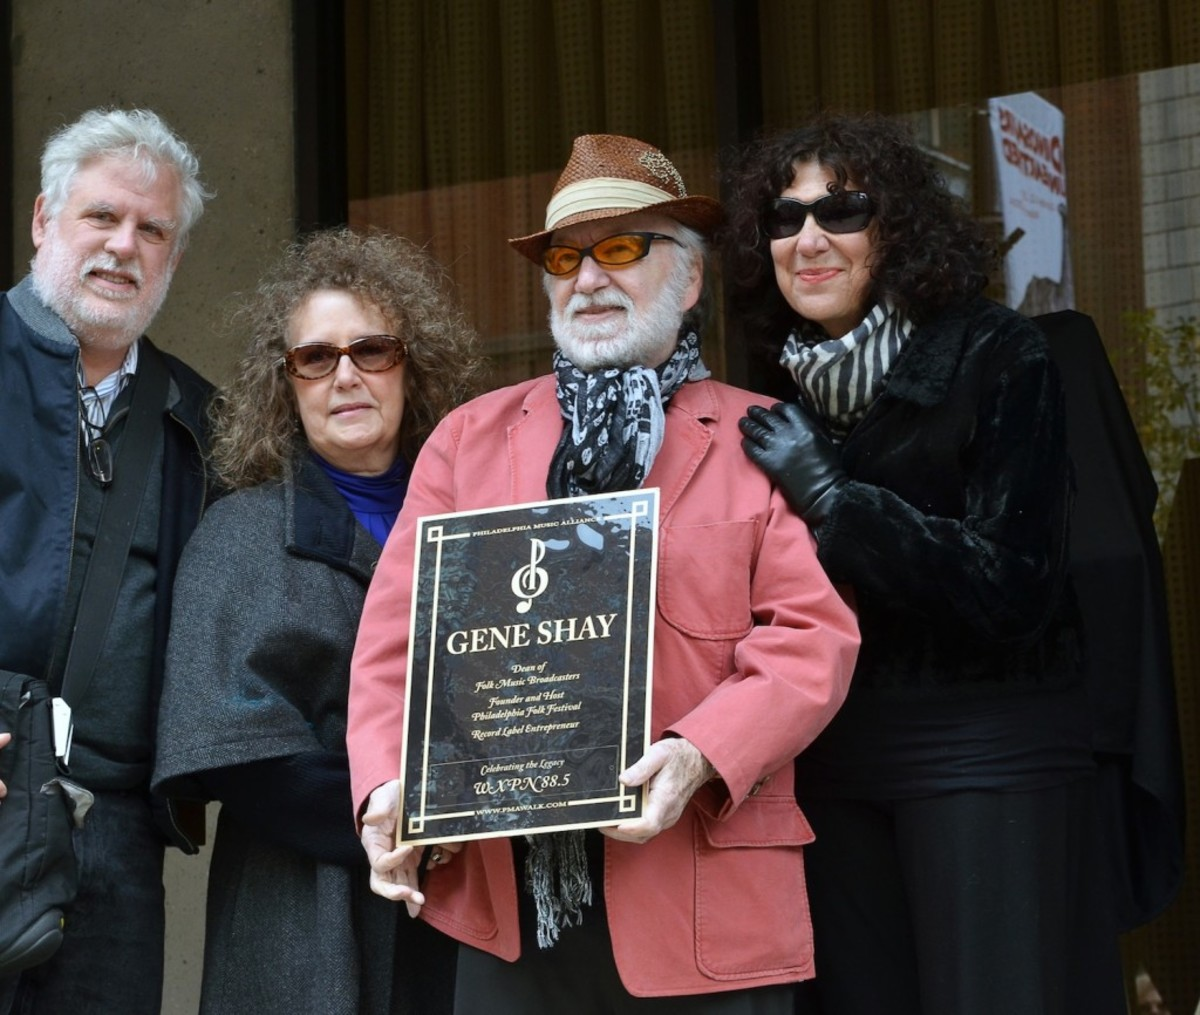 WXPN-FM air personality Gene Shay, who hosts a weekly folk show on the station, holds his replica plaque. With him are colleagues David Dye, Helen Leicht and Michaela Majoun. As a promoter, Shay was the first to bring Bob Dylan to Philadelphia. Shay is also the founder of the Philadelphia Folk Festival. (Photo by Chris M. Junior)